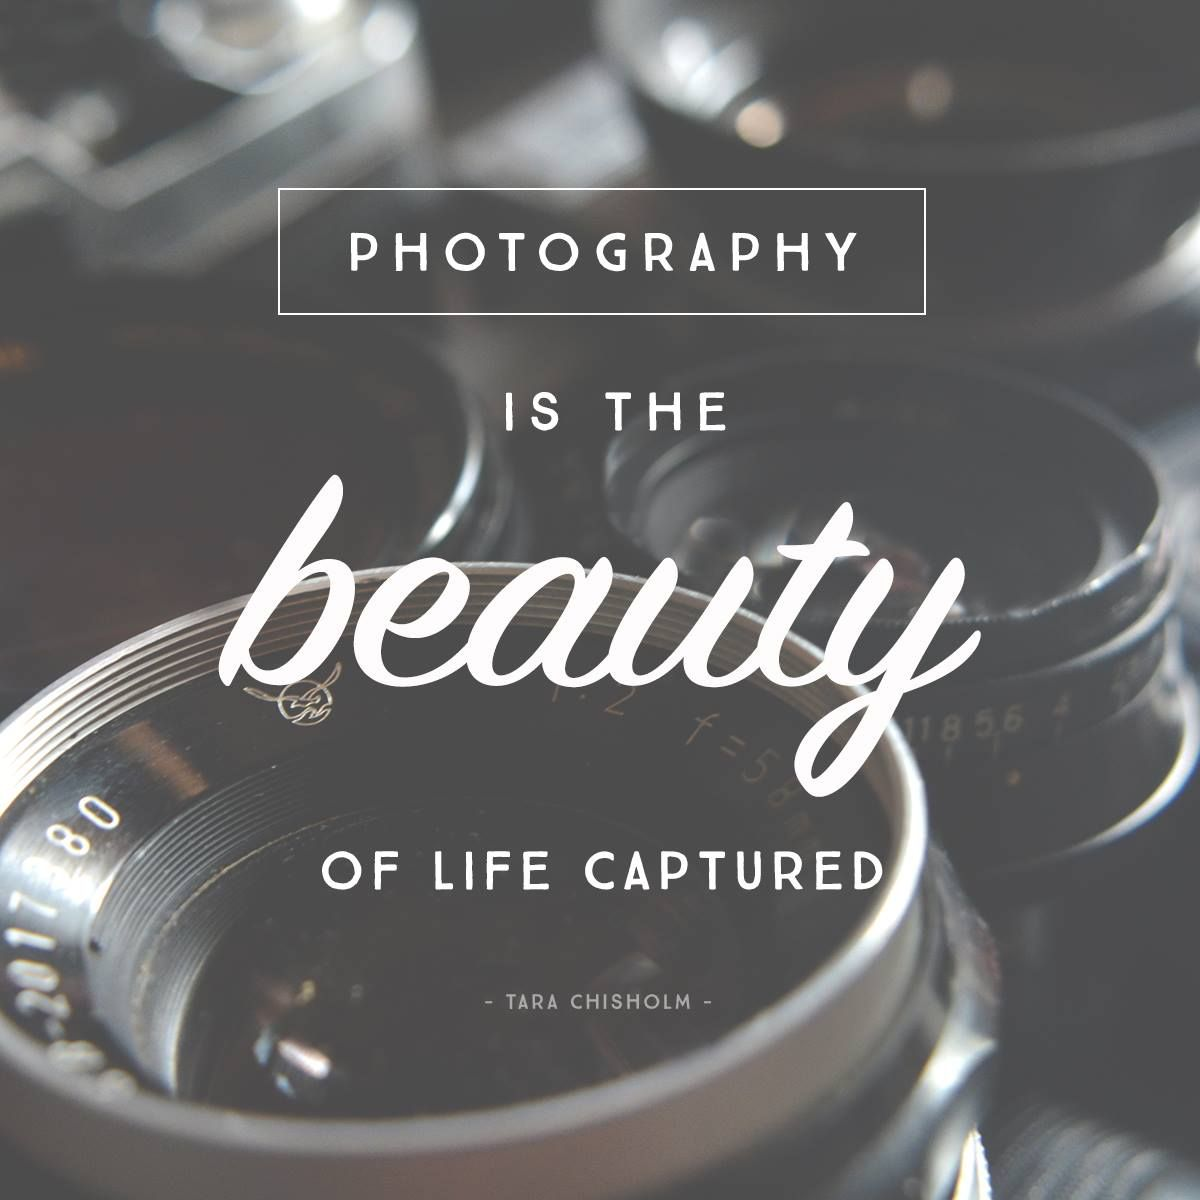 Photography Quotes 12 Quotes Inspire Photography Journey  Photography Photography .